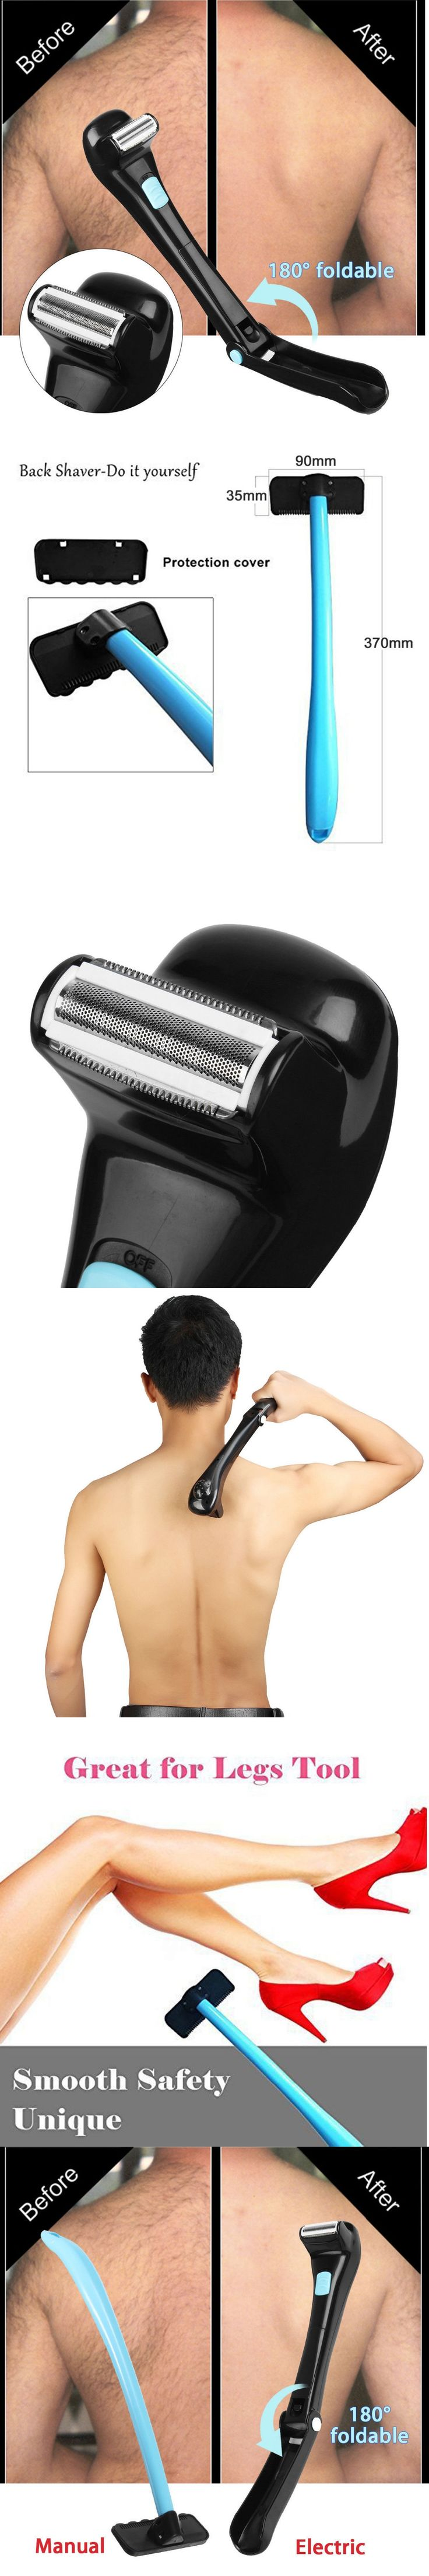 Best 25 back shaver ideas on pinterest body shaver unique electric manual do it yourself back shaver remover shaving pro body hairtrimmer long handle solutioingenieria Gallery